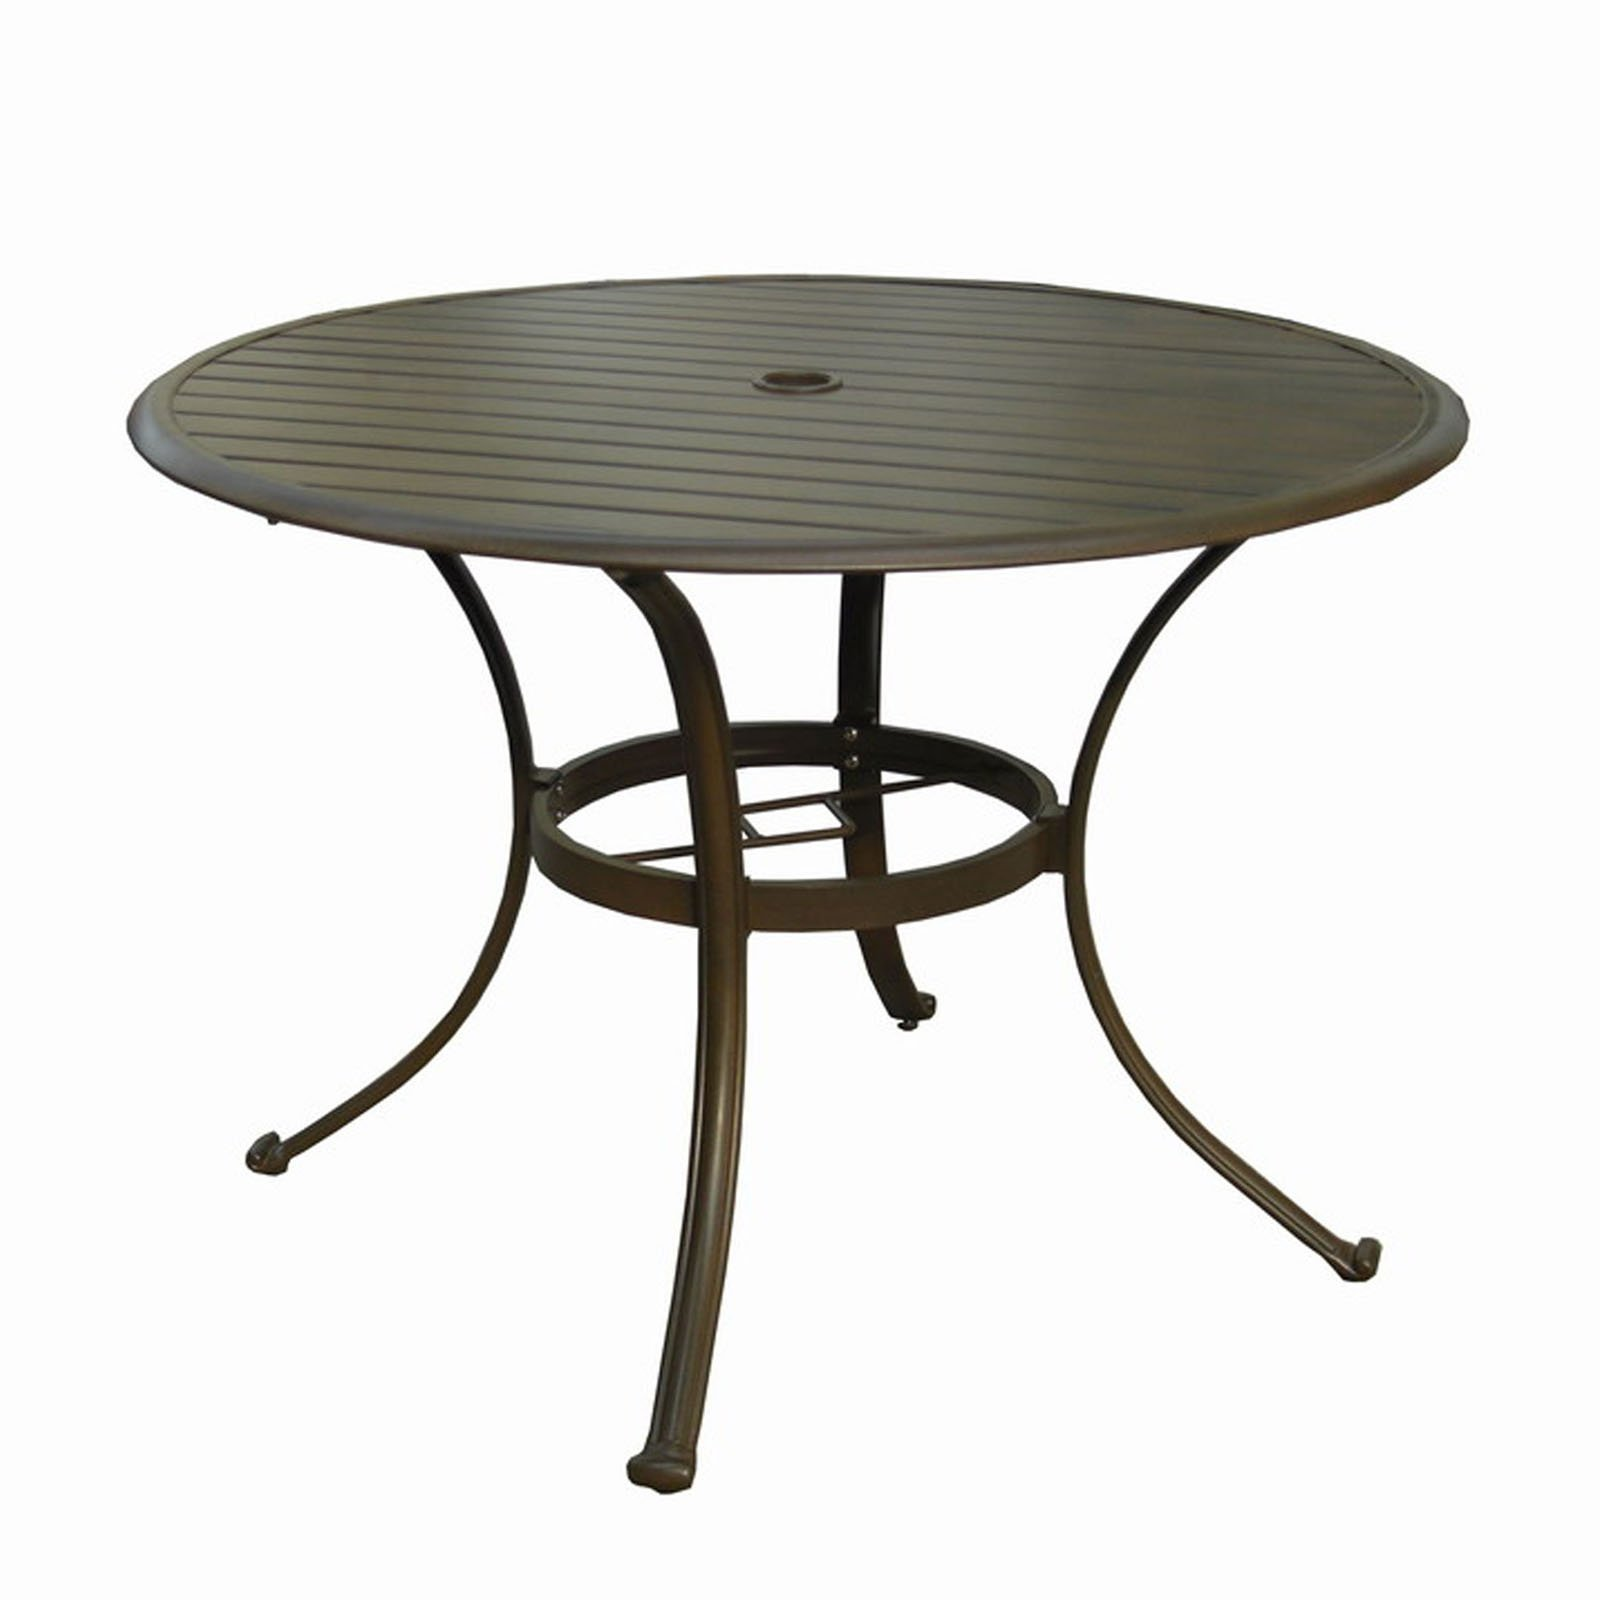 Image of: Round Patio Table Umbrella